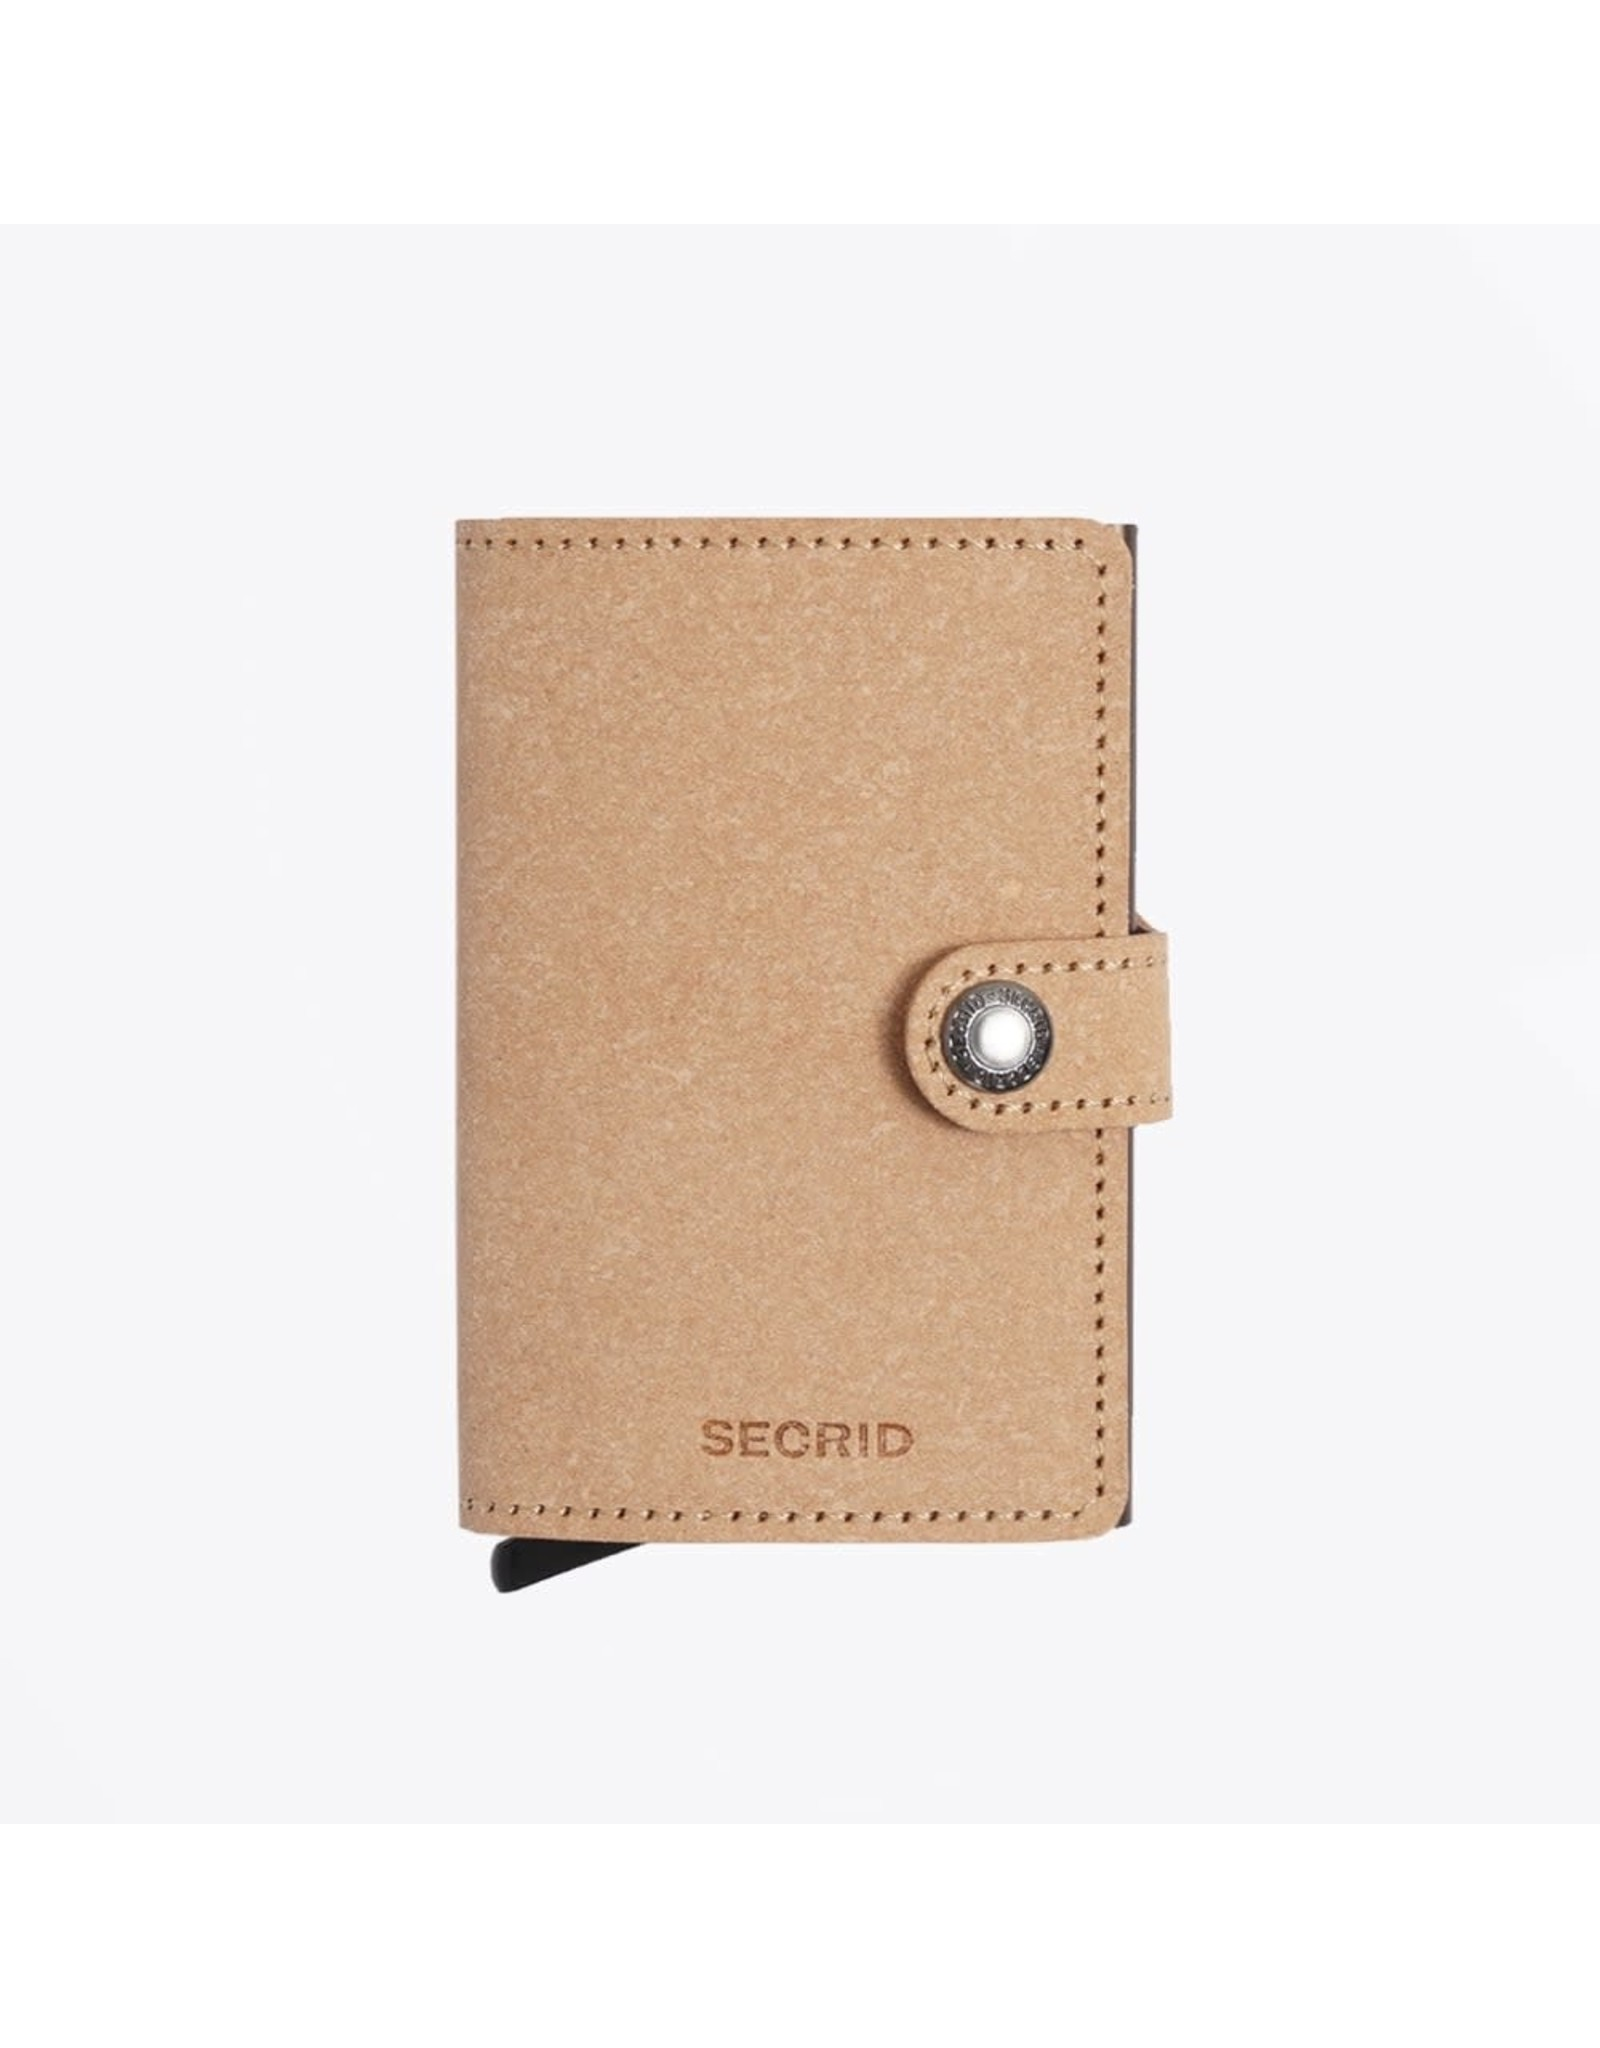 Secrid Slimwallet, Recycled Natural